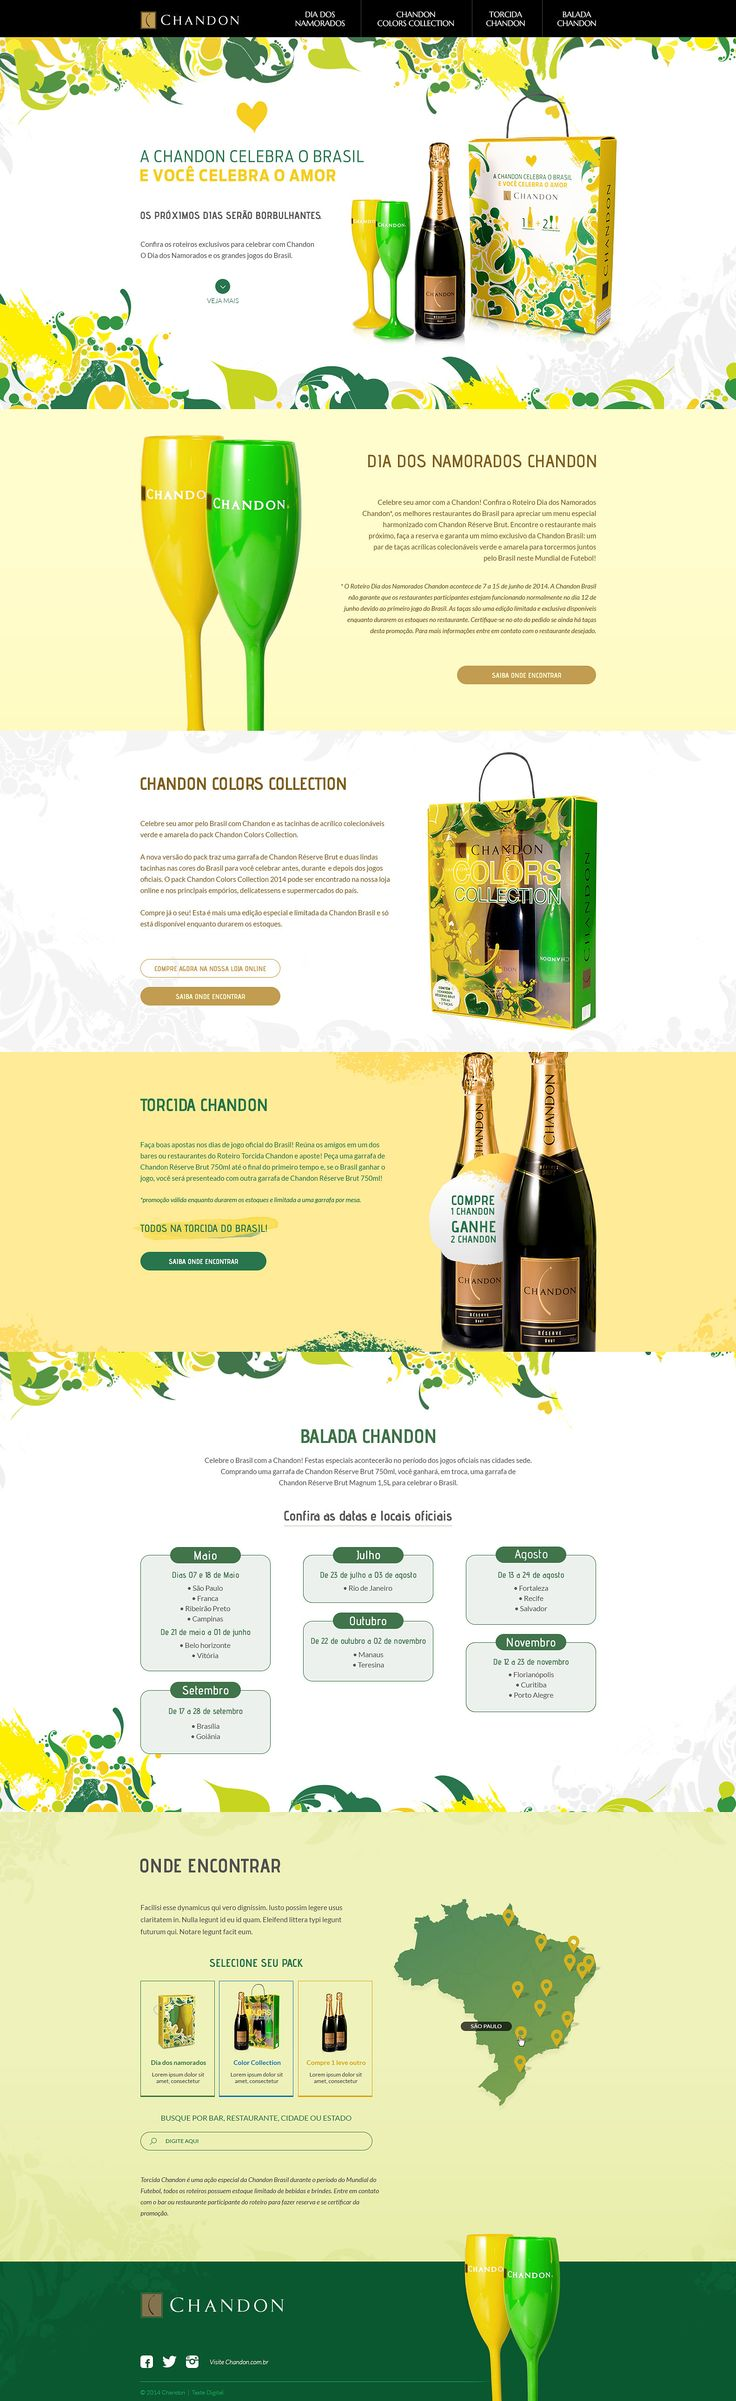 Unique Web Design, Chandon #WebDesign #Design (http://www.pinterest.com/aldenchong/)